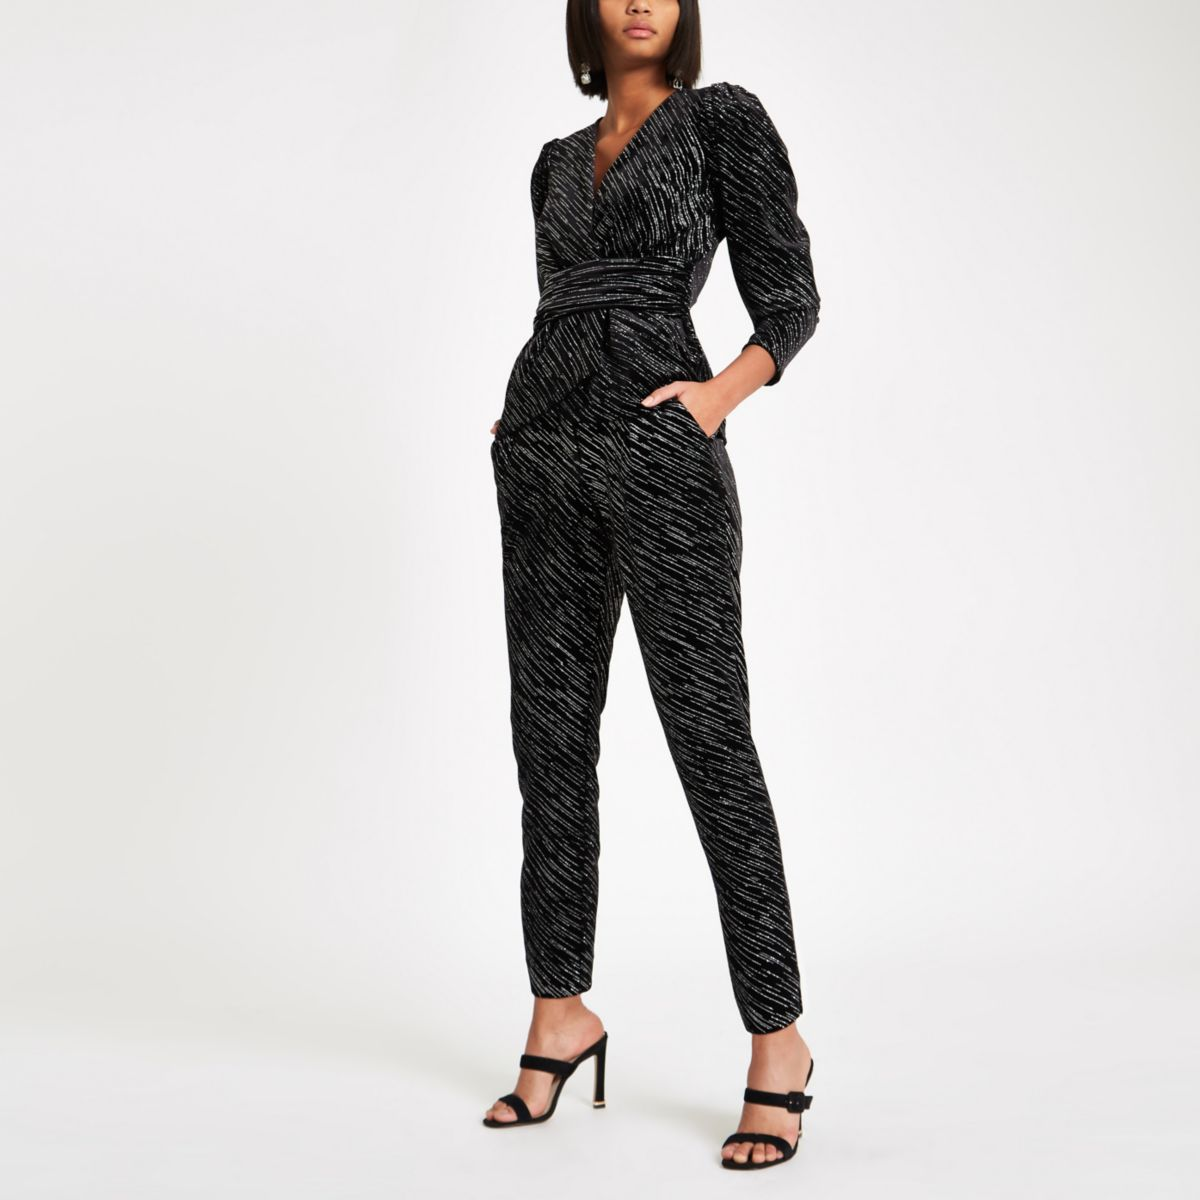 Black velvet glitter tie belted trousers